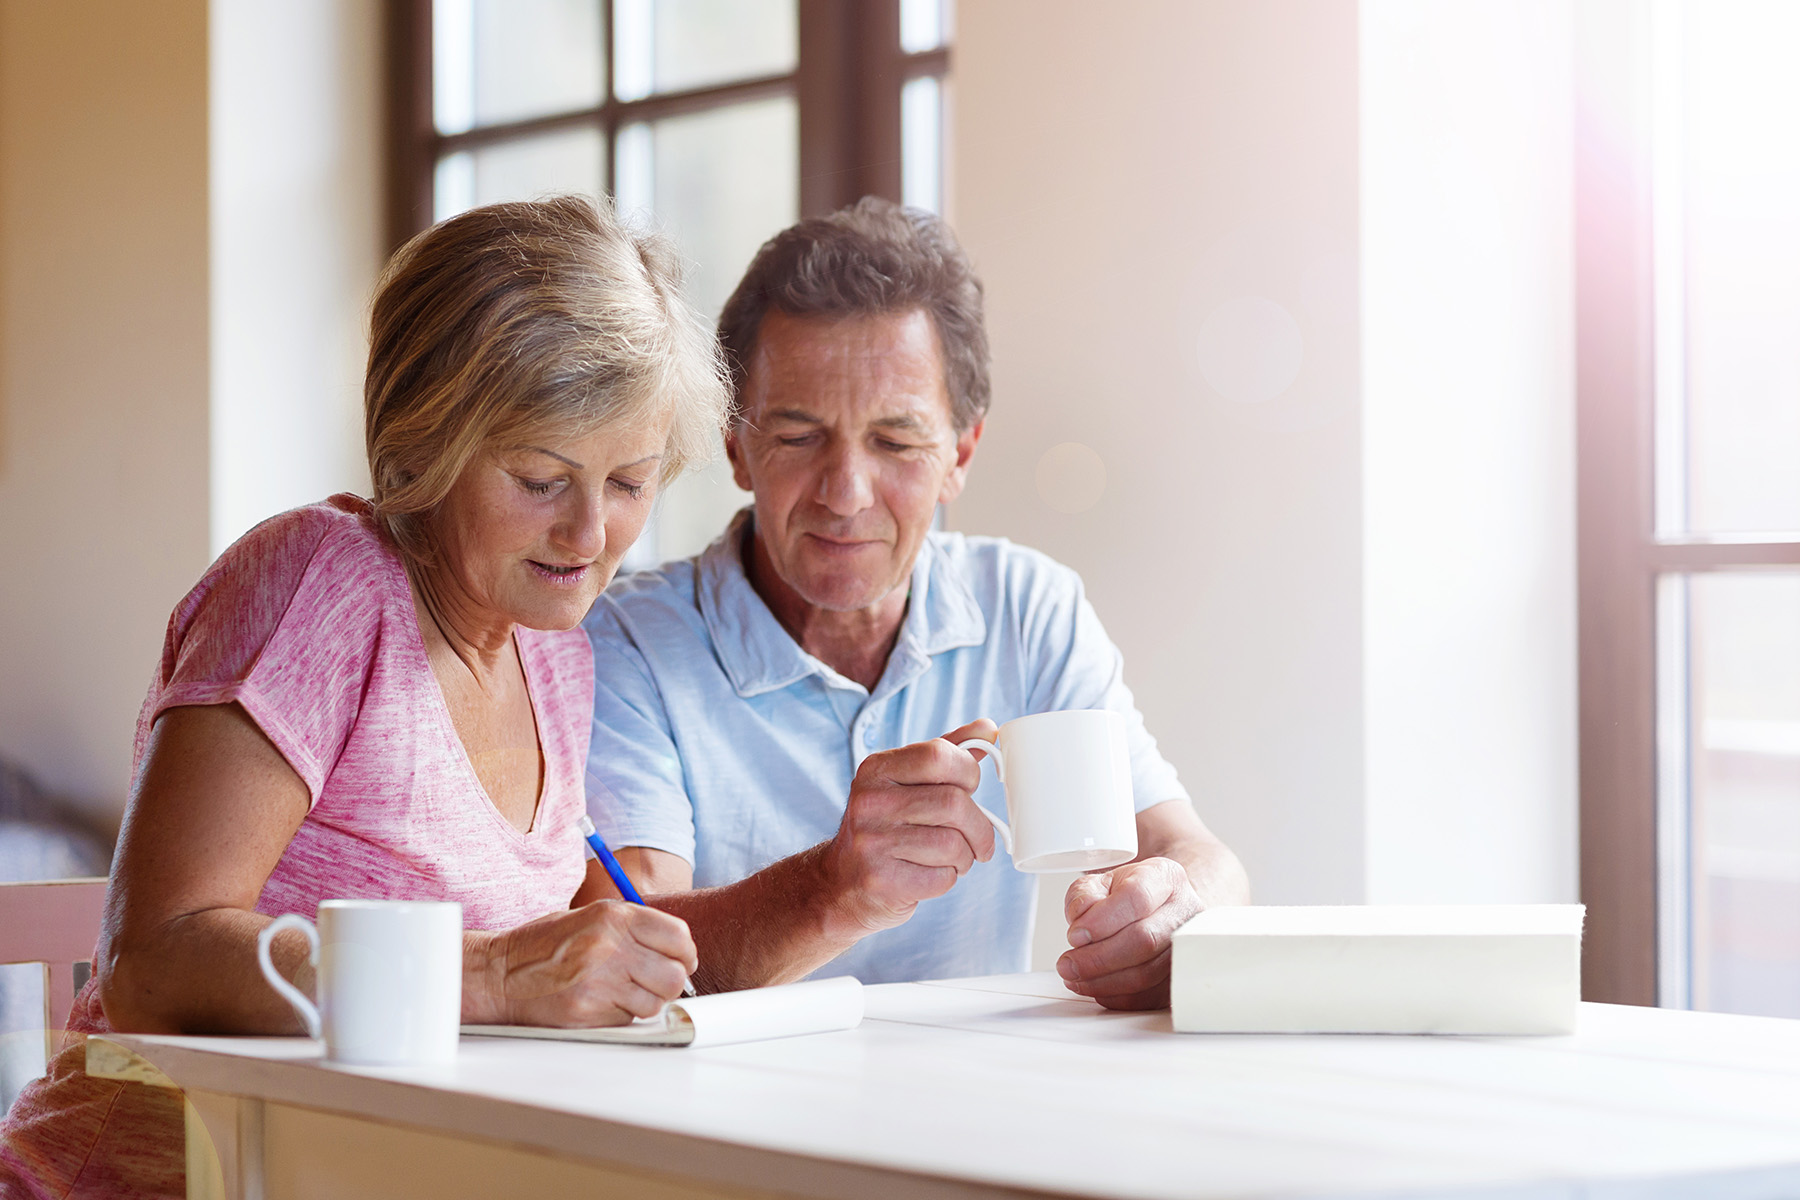 Pension age in Luxembourg